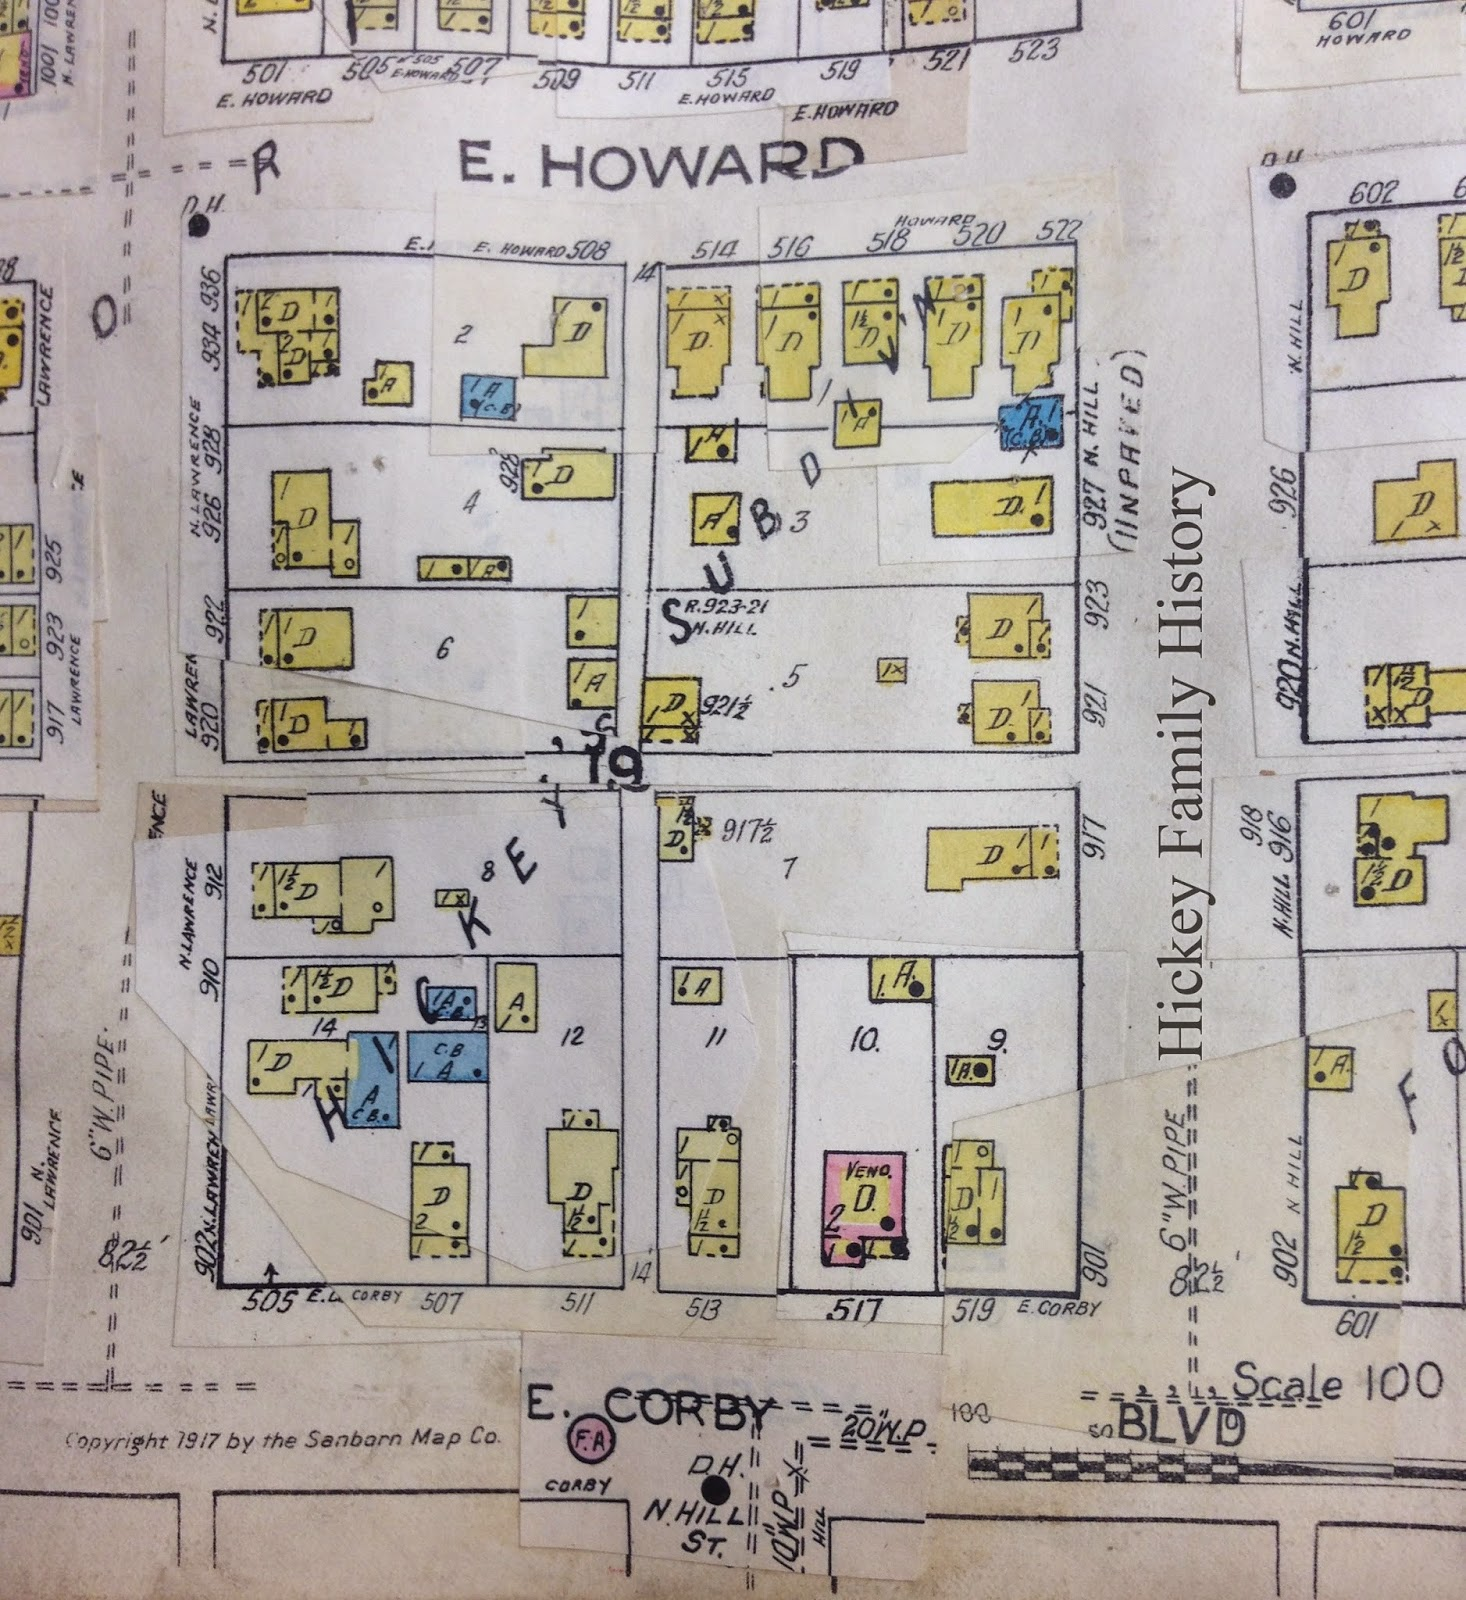 1933 sanborn fire insurance map of hickey s subdivision